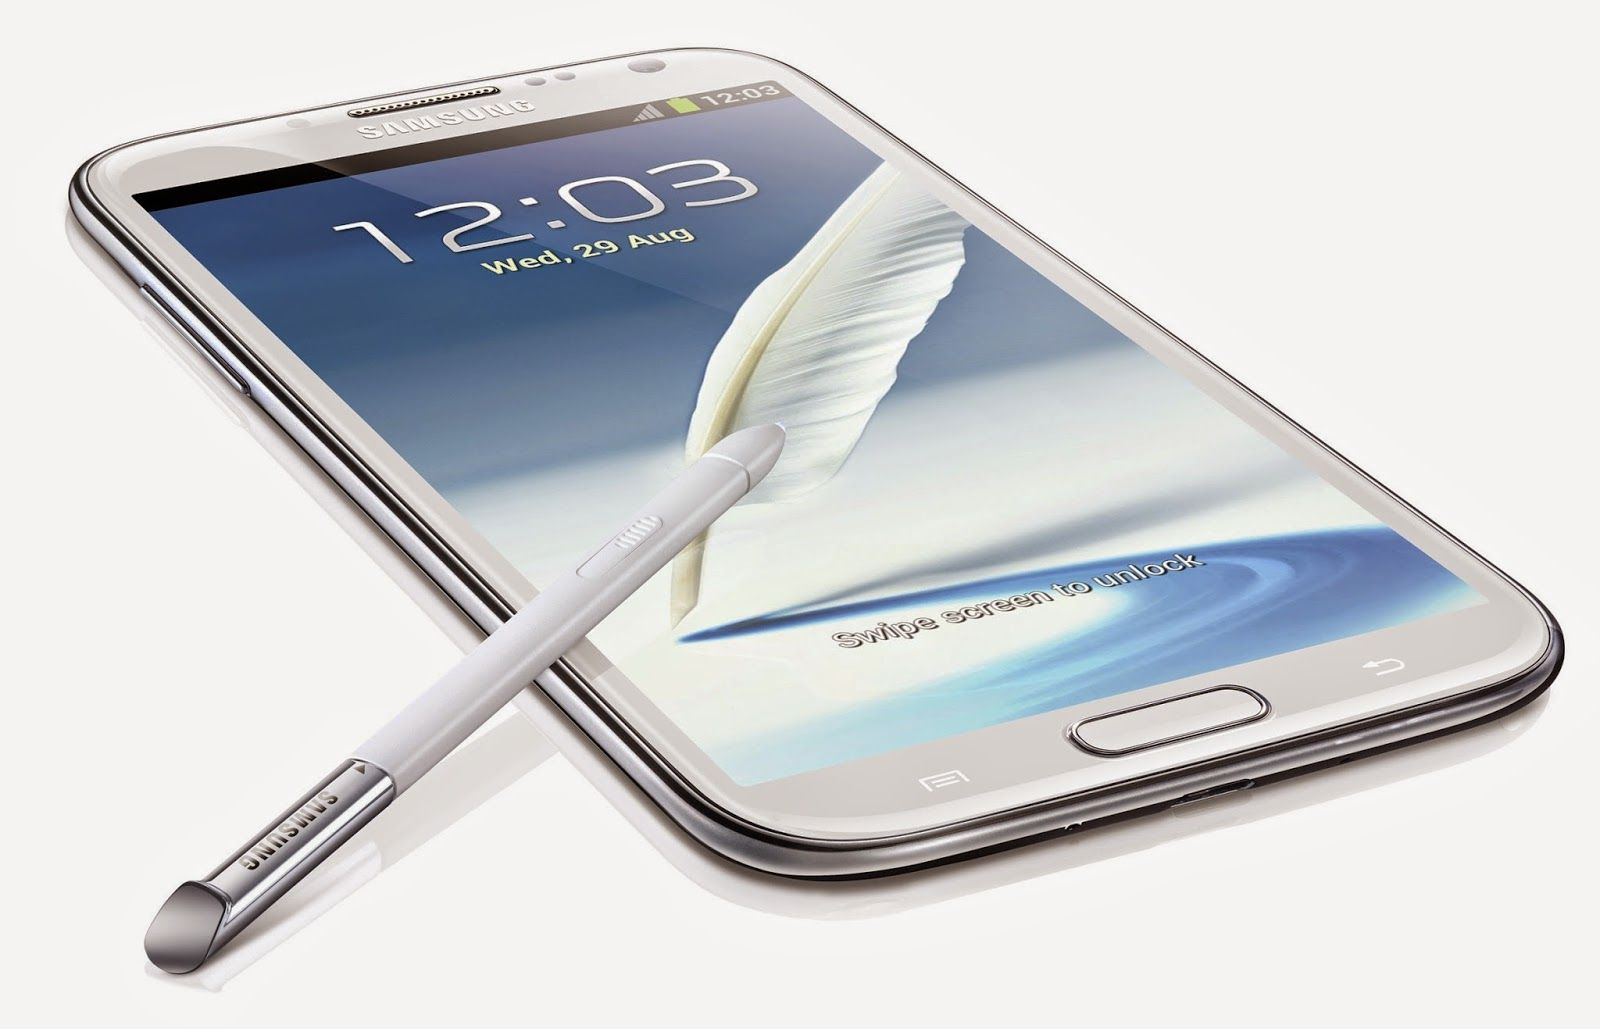 The Easiest Way How To Update Samsung Galaxy Note 2 Without